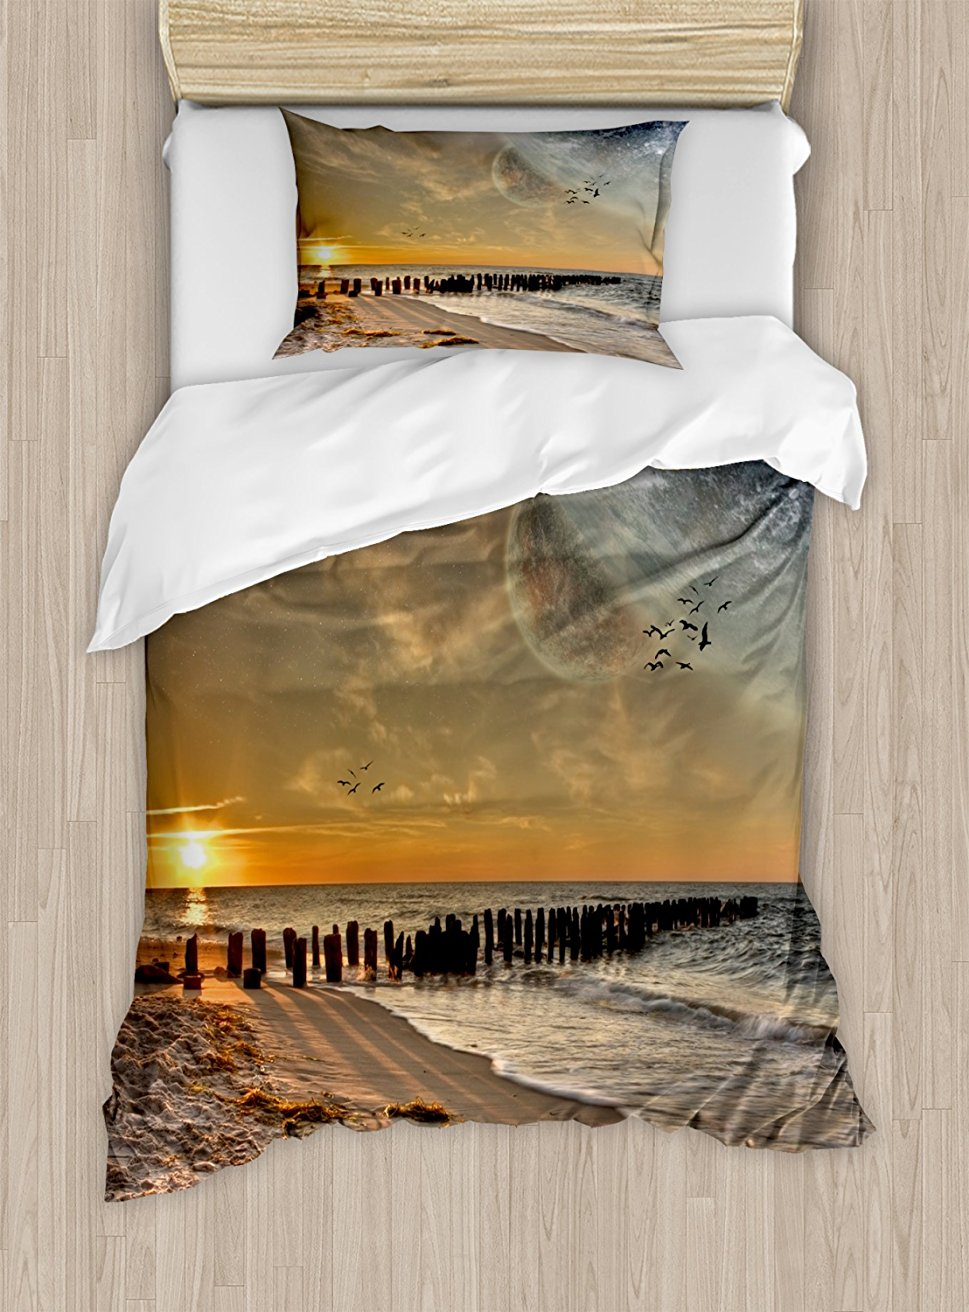 Space Duvet Cover Set Magical Solar Eclipse on Beach Ocean with Horizon Sun Moon Globe Gulls Flying View 4 Piece Bedding Set